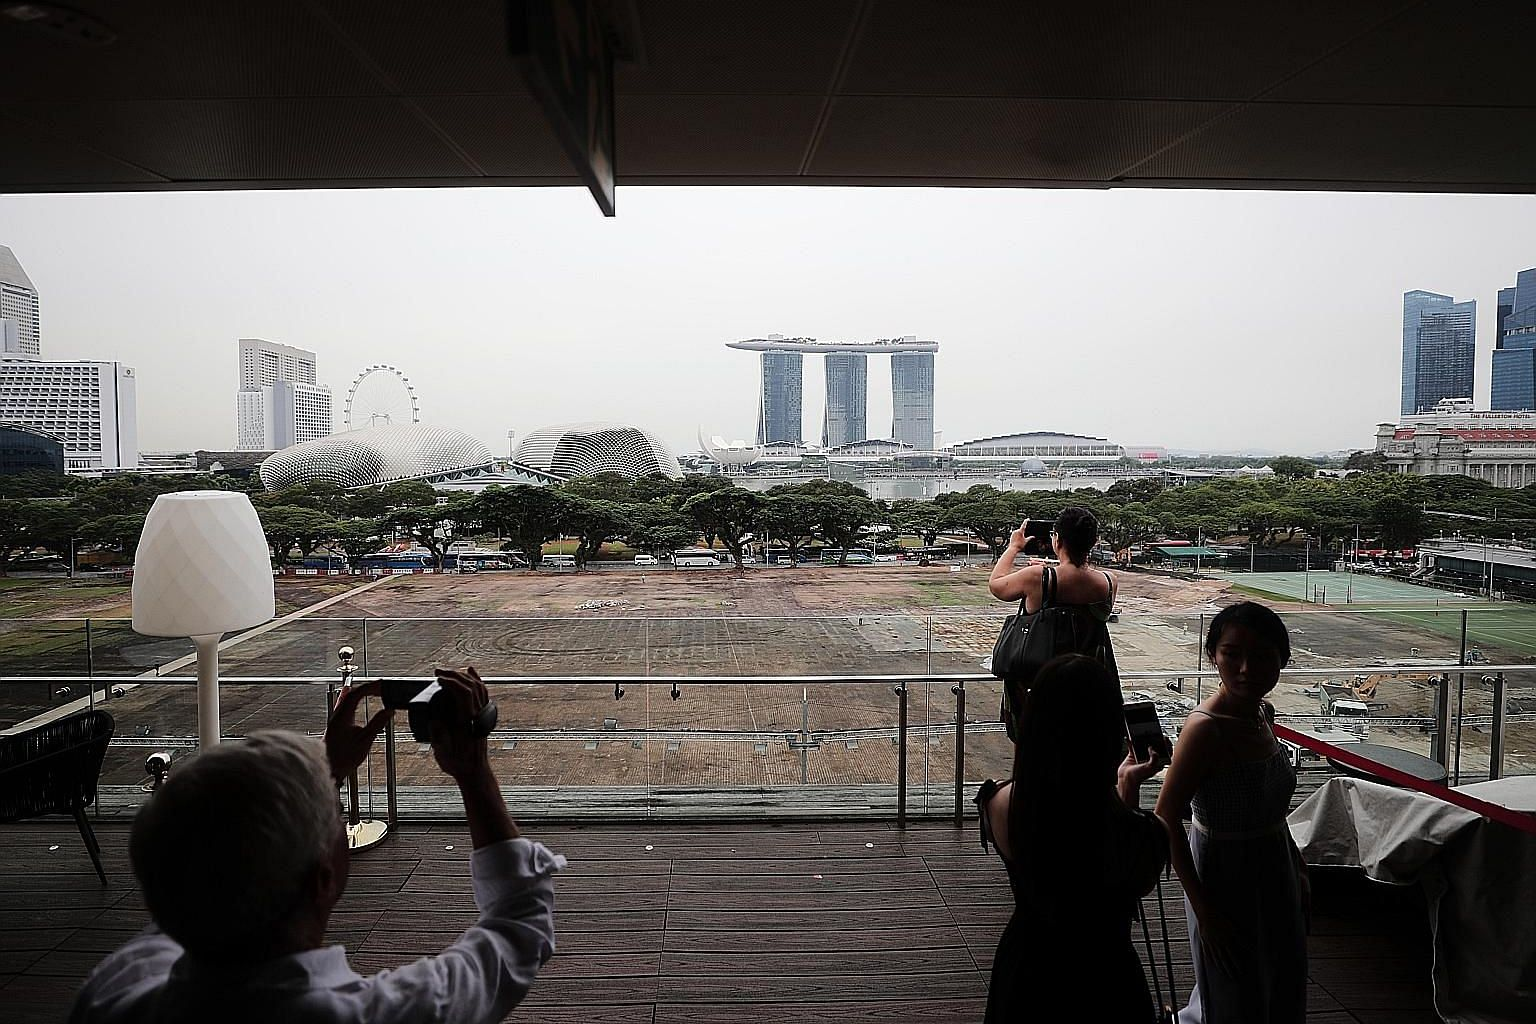 The Padang, photographed last Wednesday, with patches of brown following last month's National Day Parade. Work is under way to returf the expanse ahead of the Singapore Grand Prix, which will be held in the area later this month.